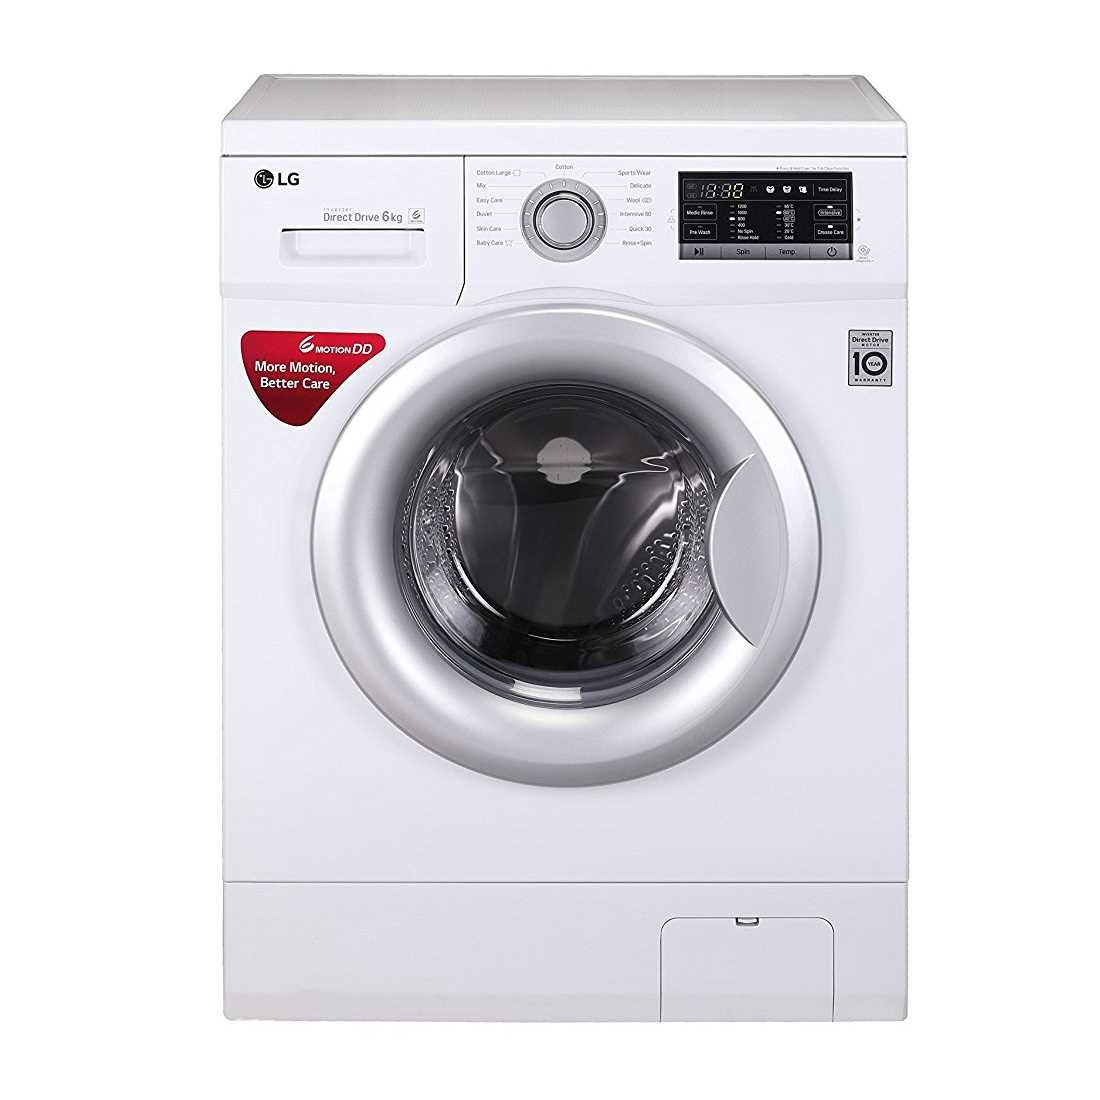 LG FH2G7NDNL12 6 Kg Fully Automatic Front Loading Washing Machine